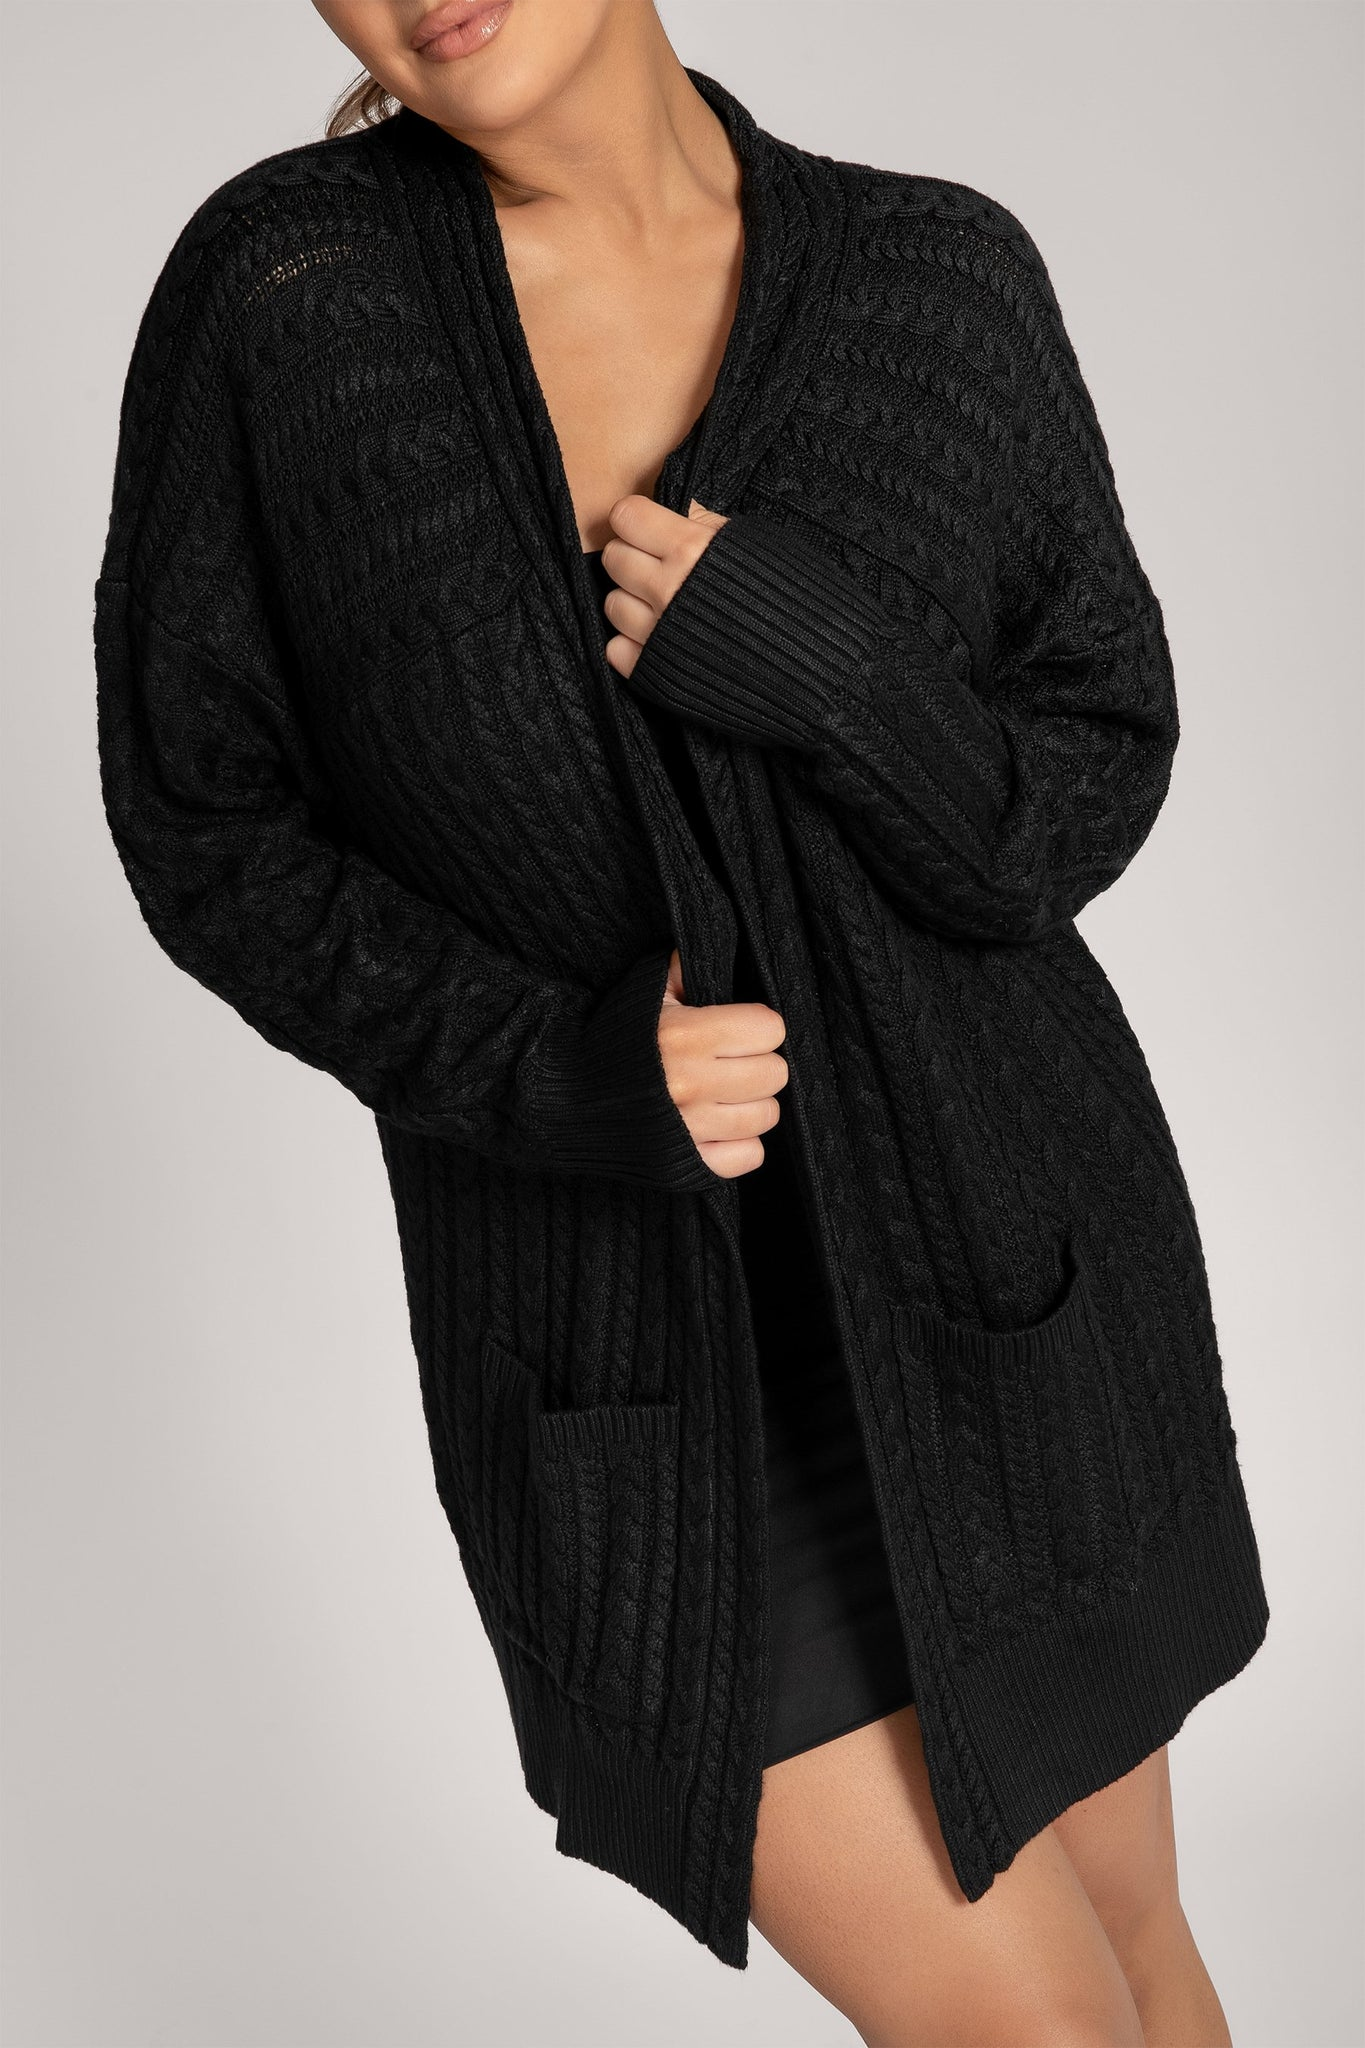 Penelope Cable Knit Cardigan - Black - MESHKI